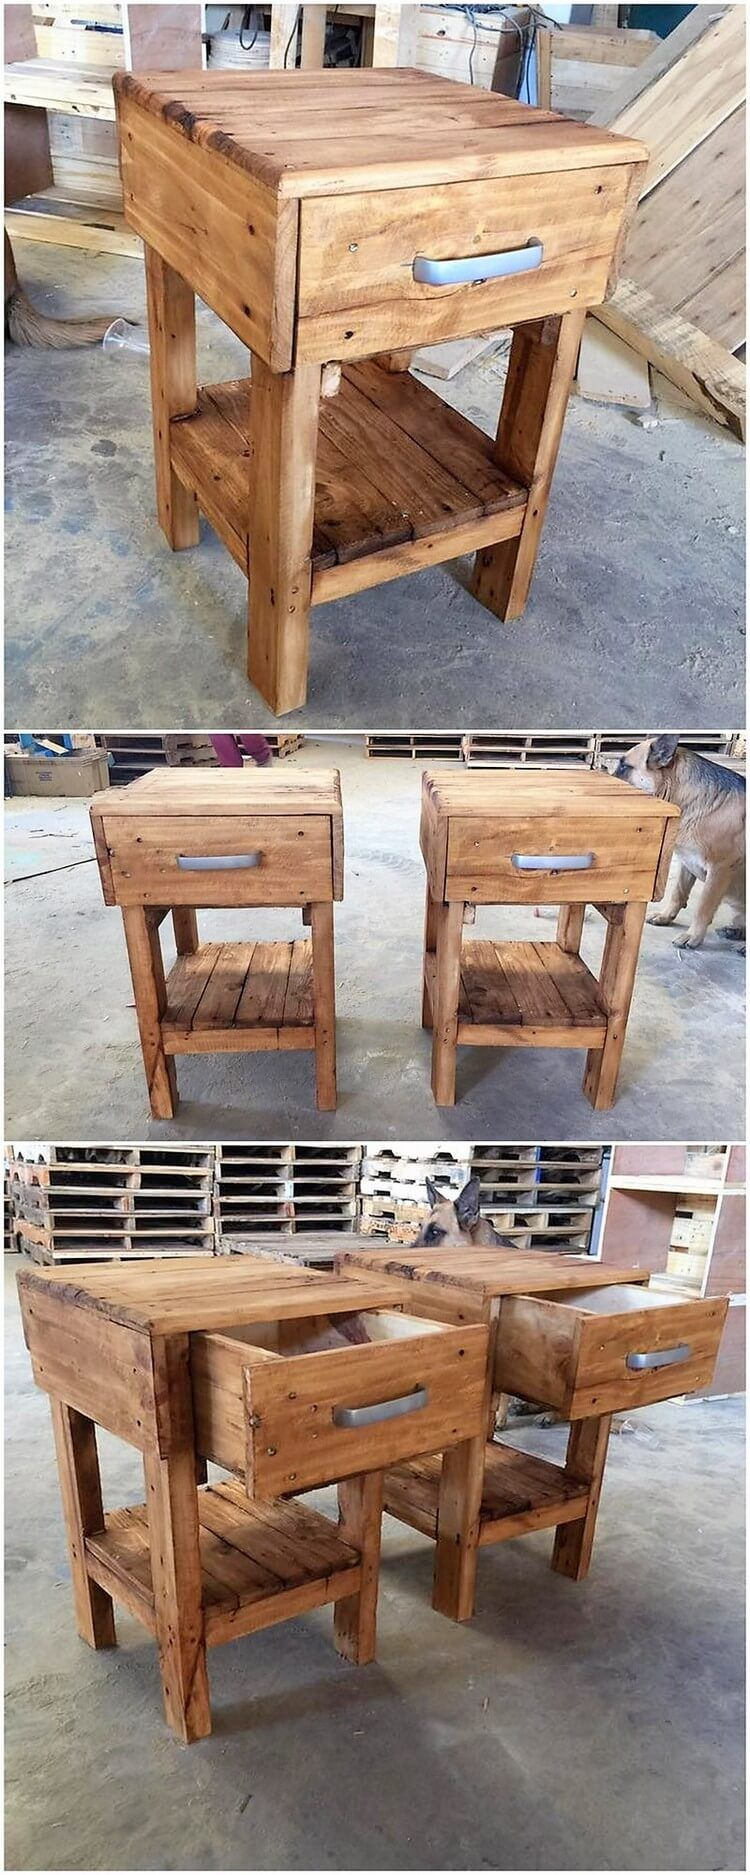 Must Try These Wooden Pallet Ideas That